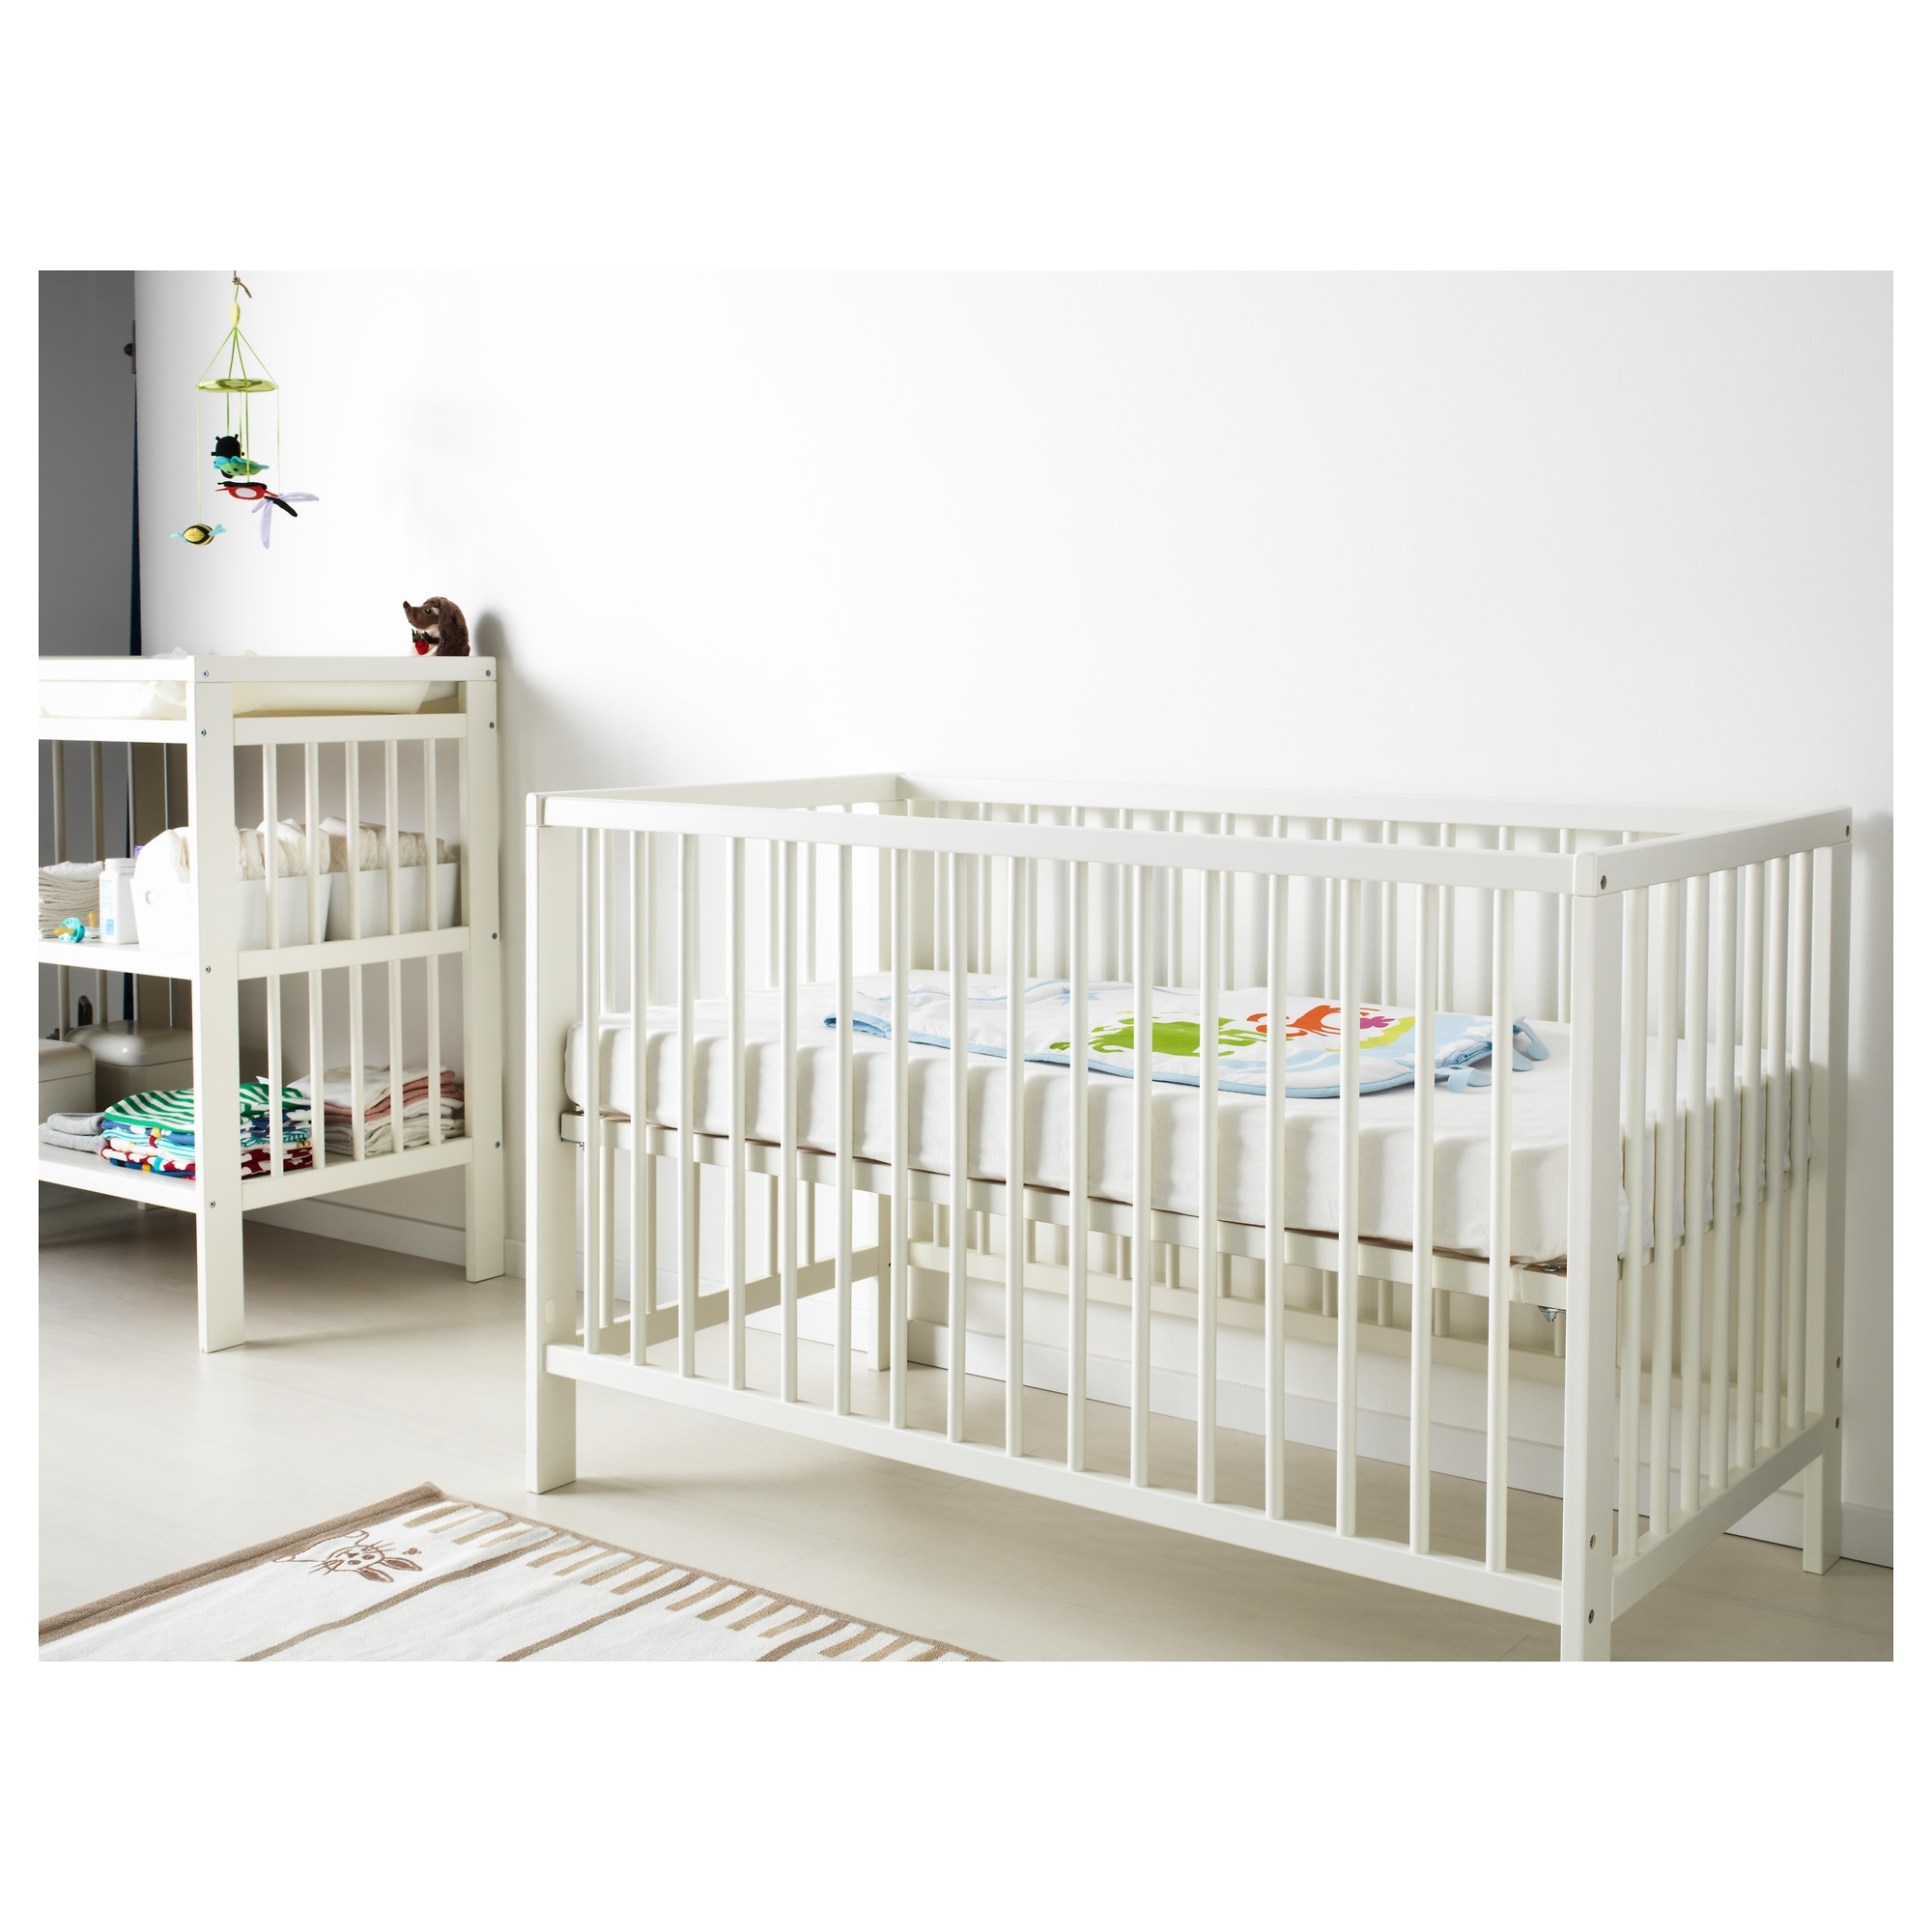 Gulliver Crib Ikea Reviews Images